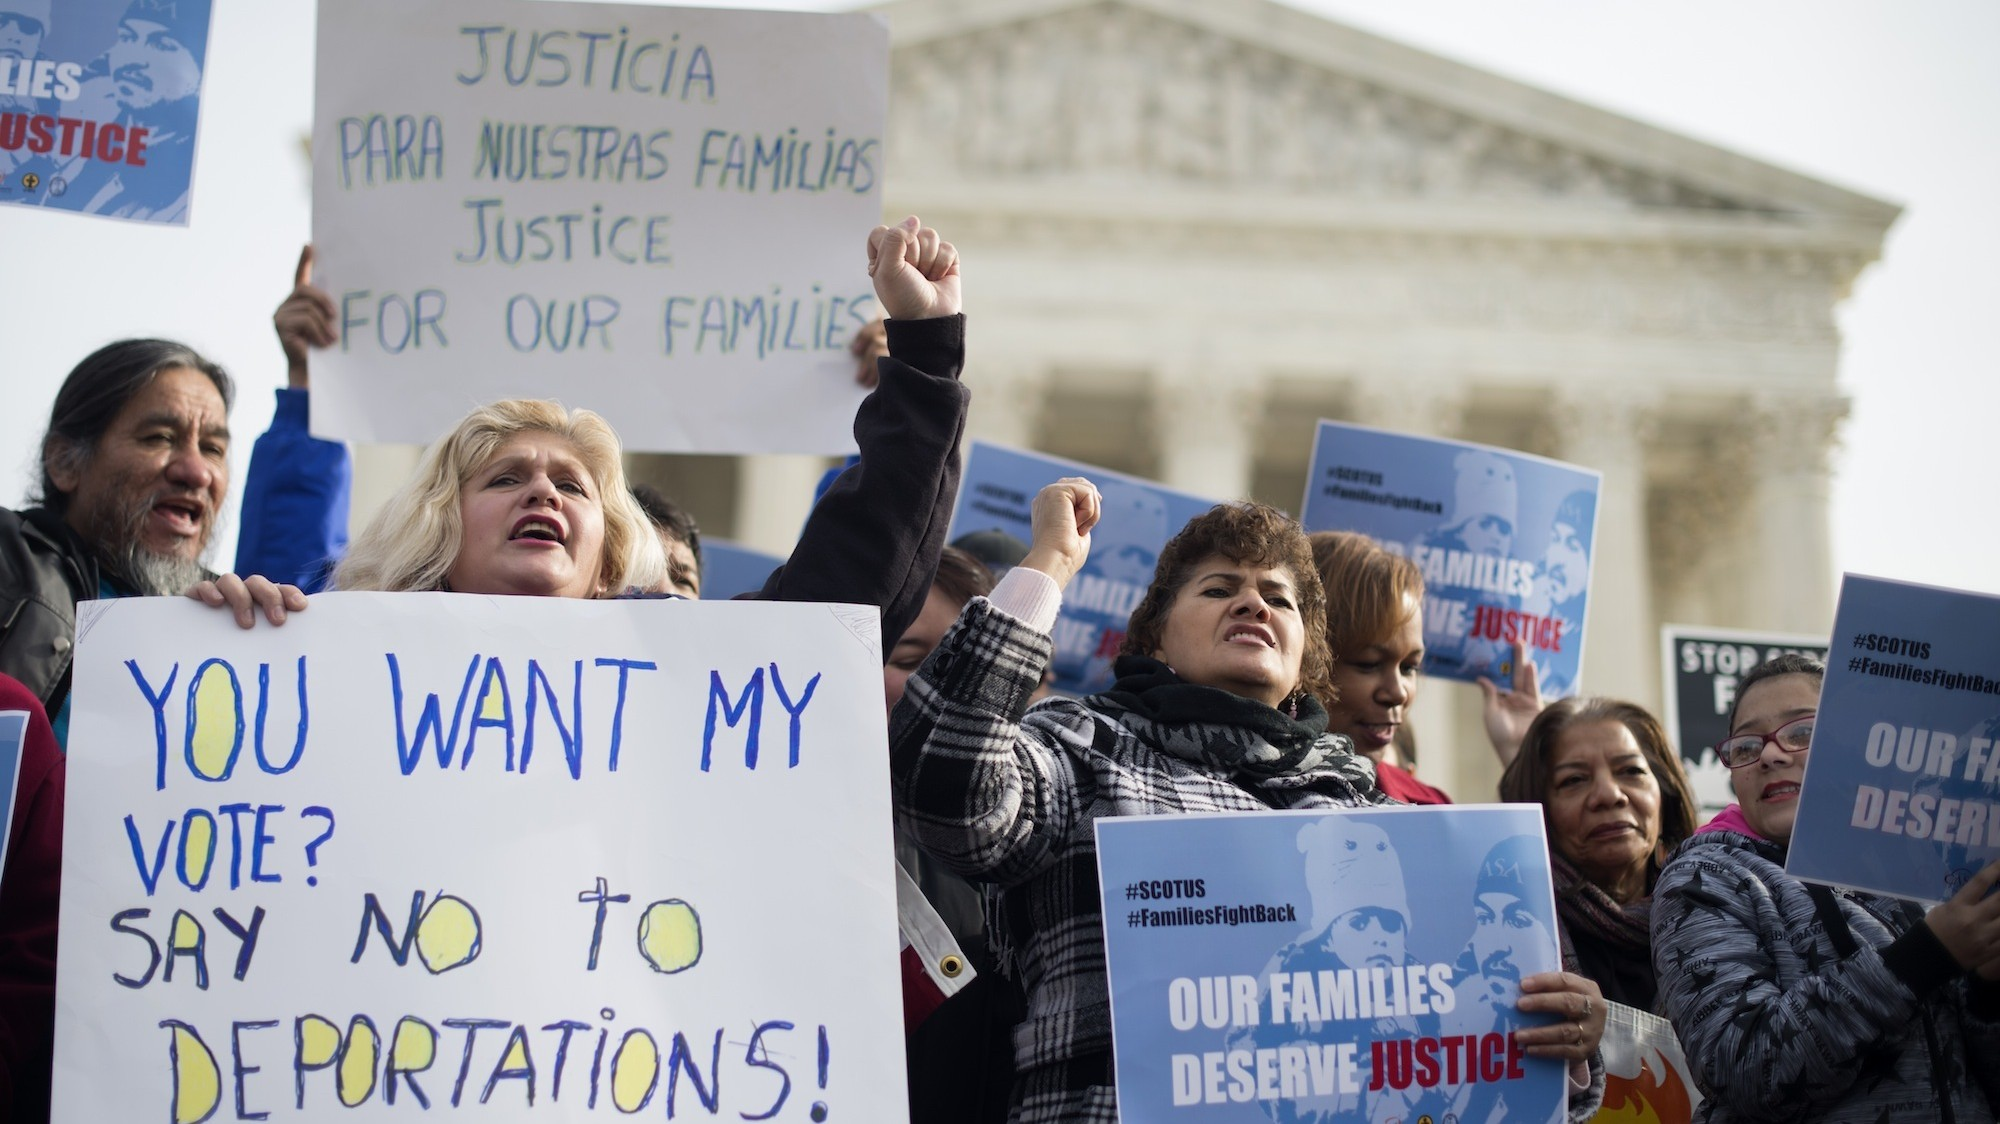 The Supreme Court Will Determine the Fate of Millions of Undocumented Immigrants